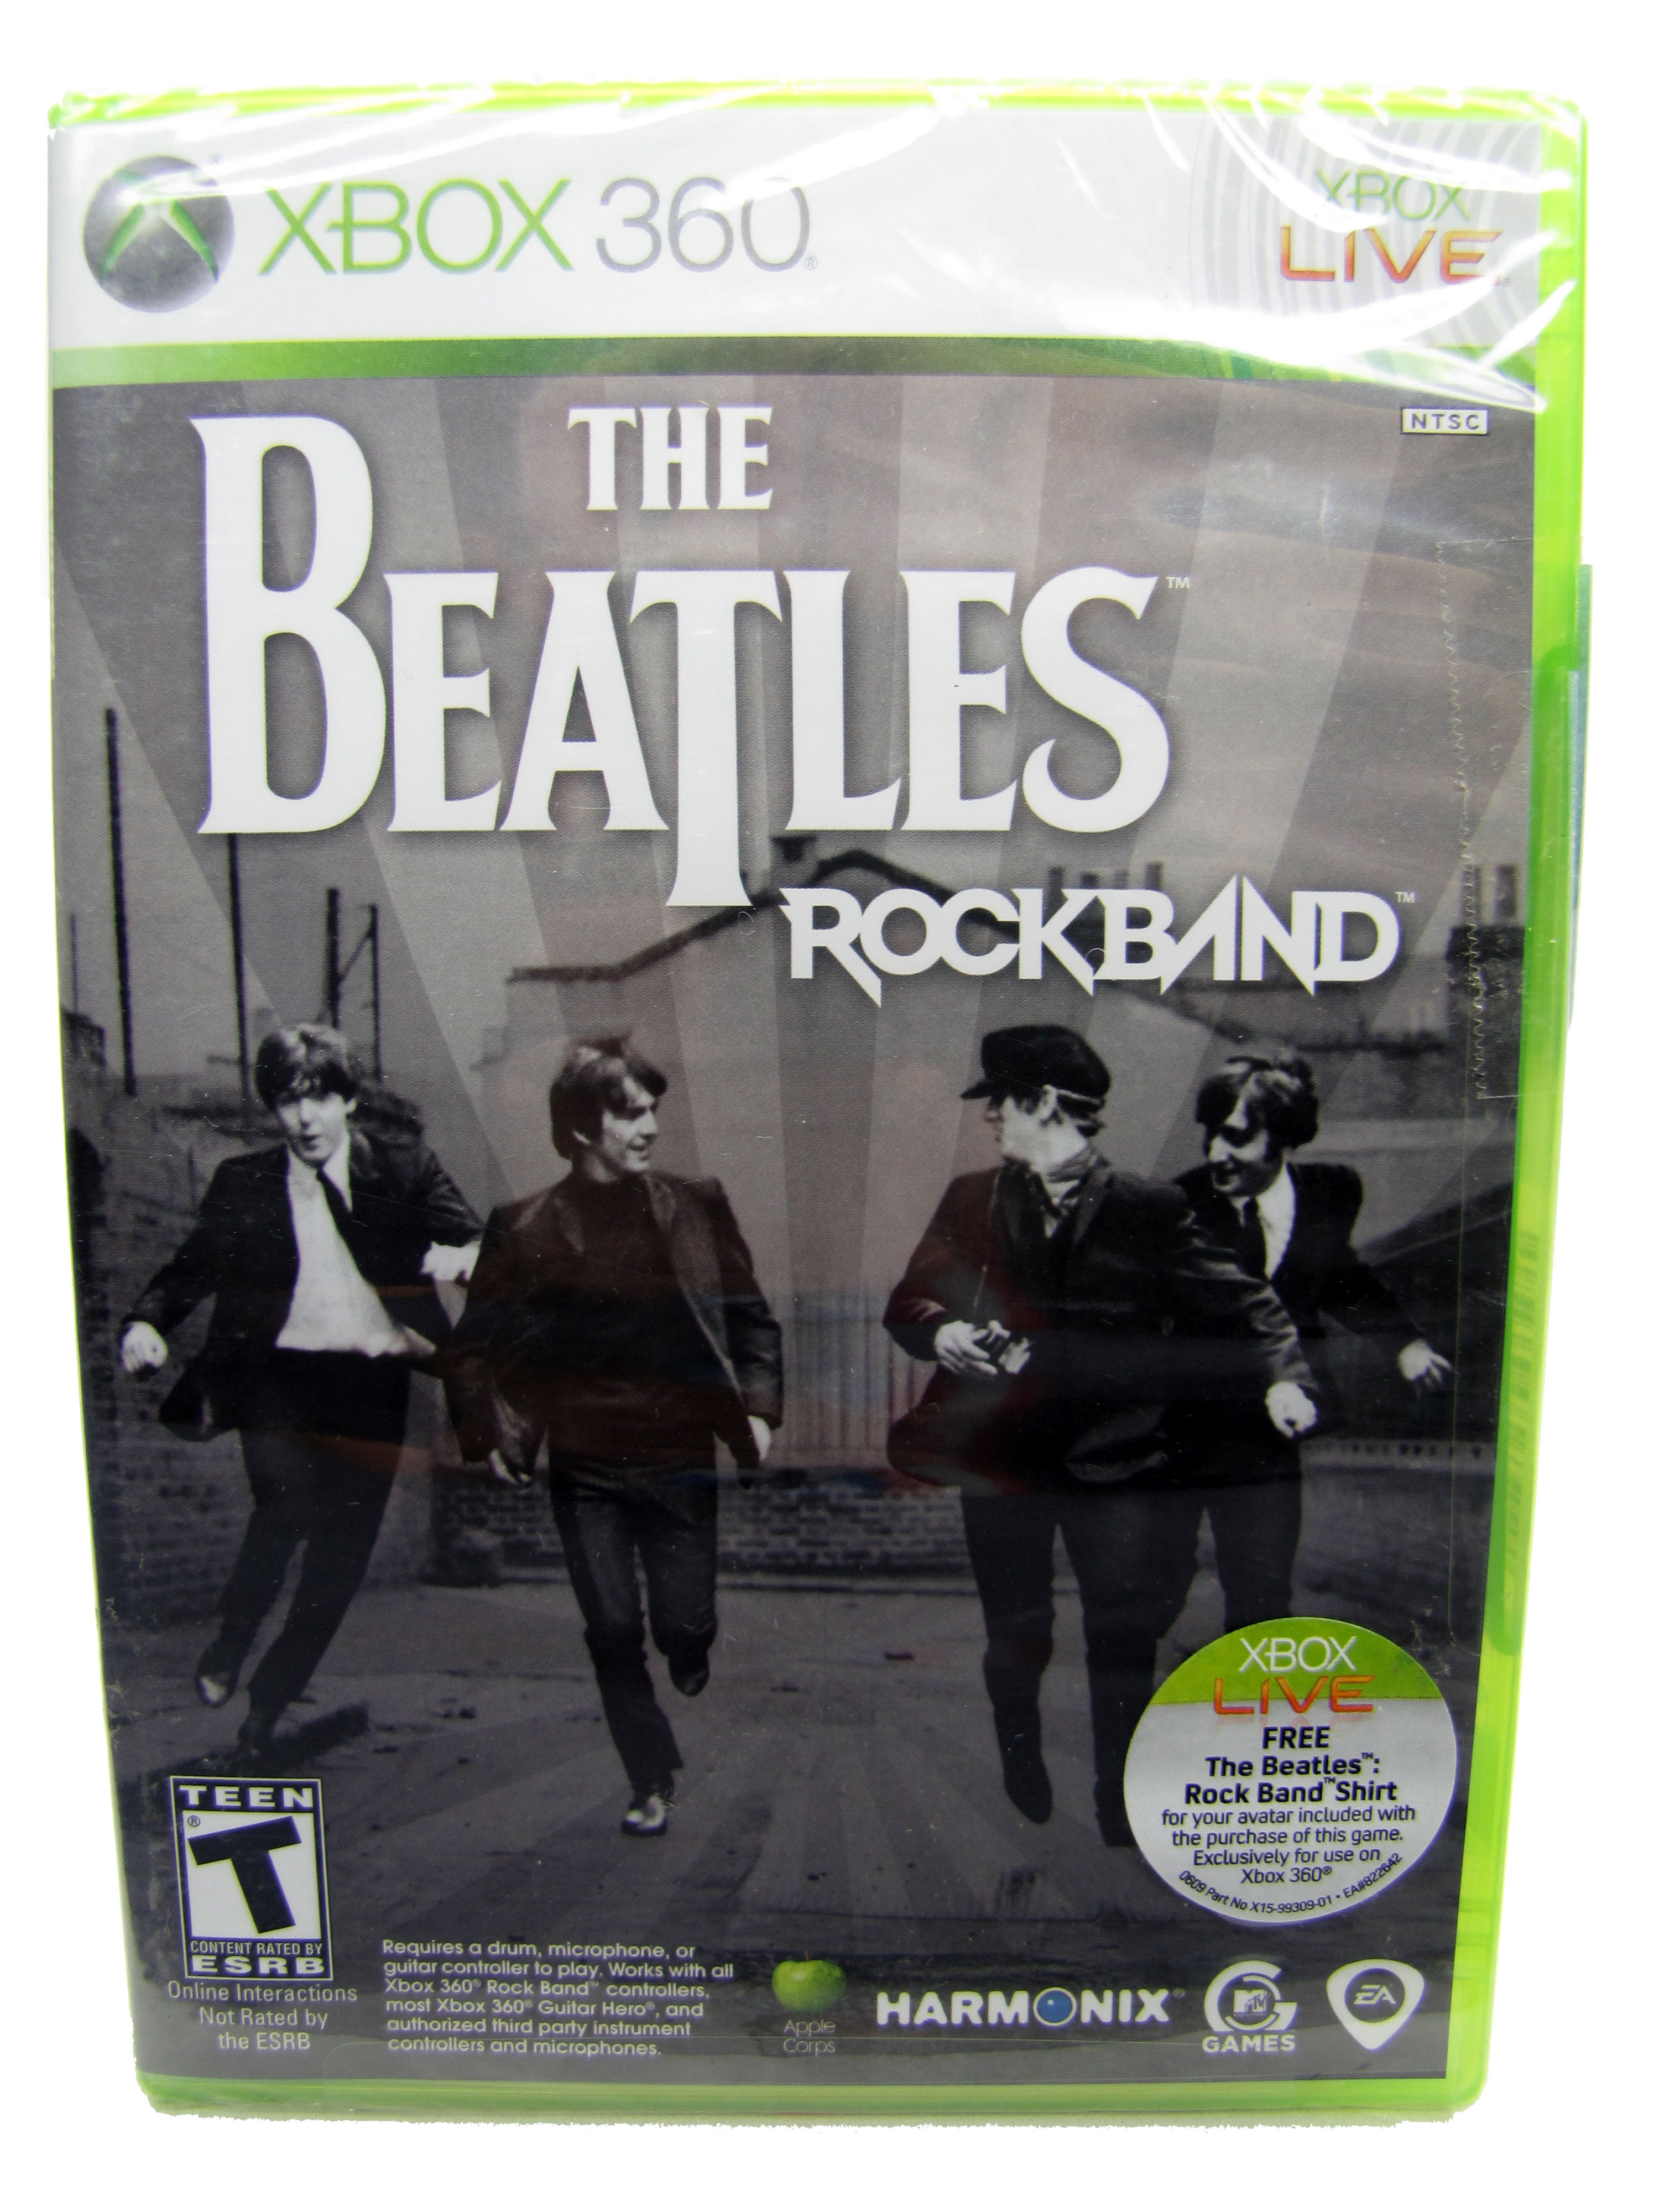 XBOX 360 The Beatles Rock Band Sealed NEW - 2009